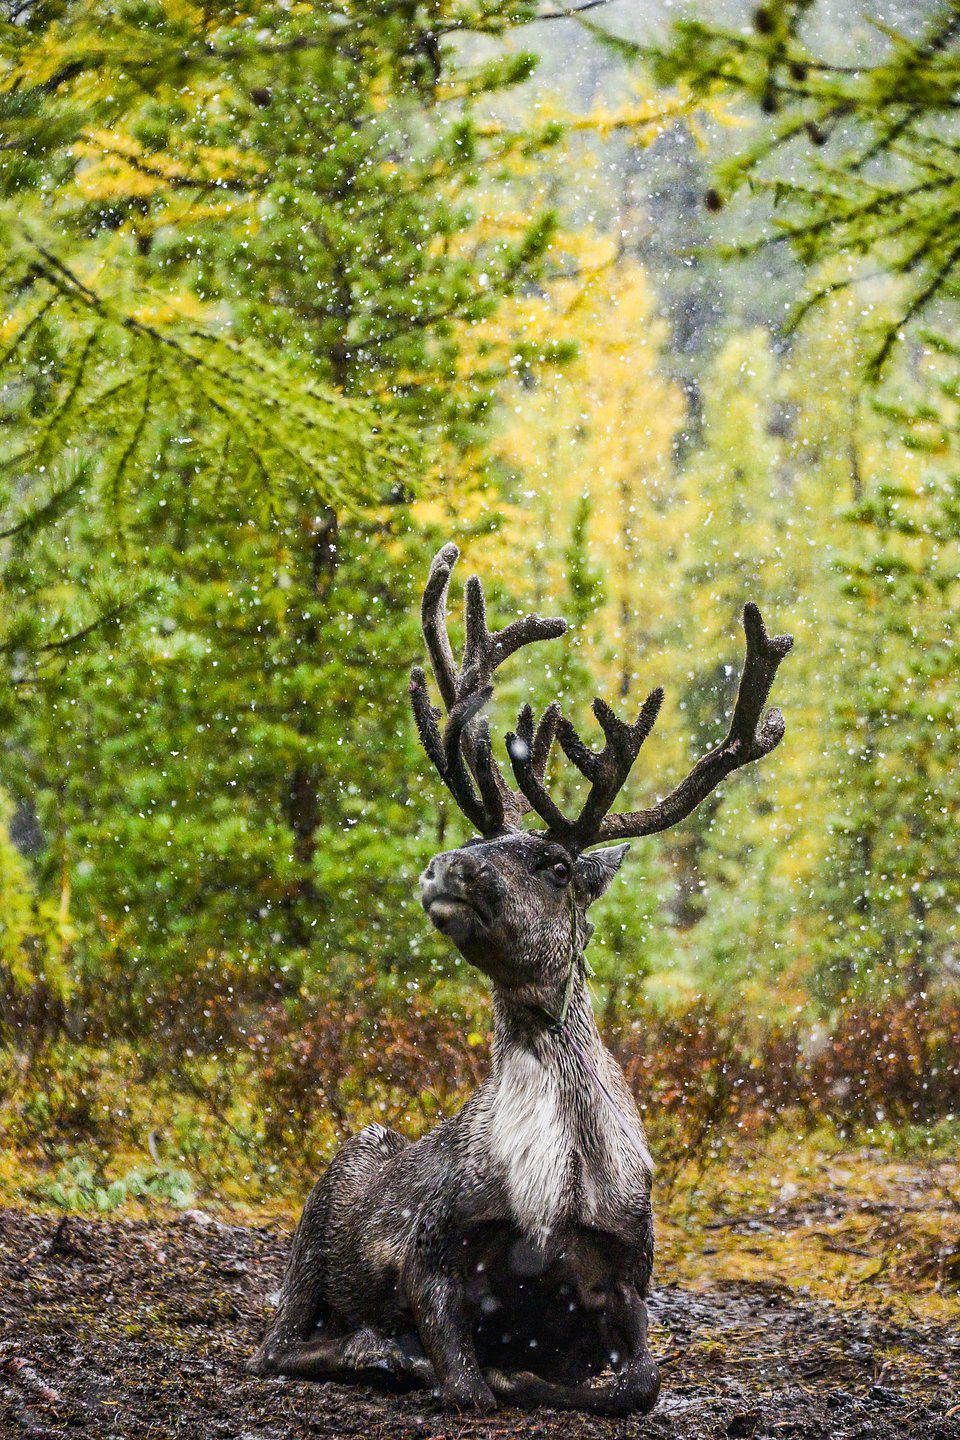 Best Animal Photos contest: Reindeer at the end of fall as first snow falls.